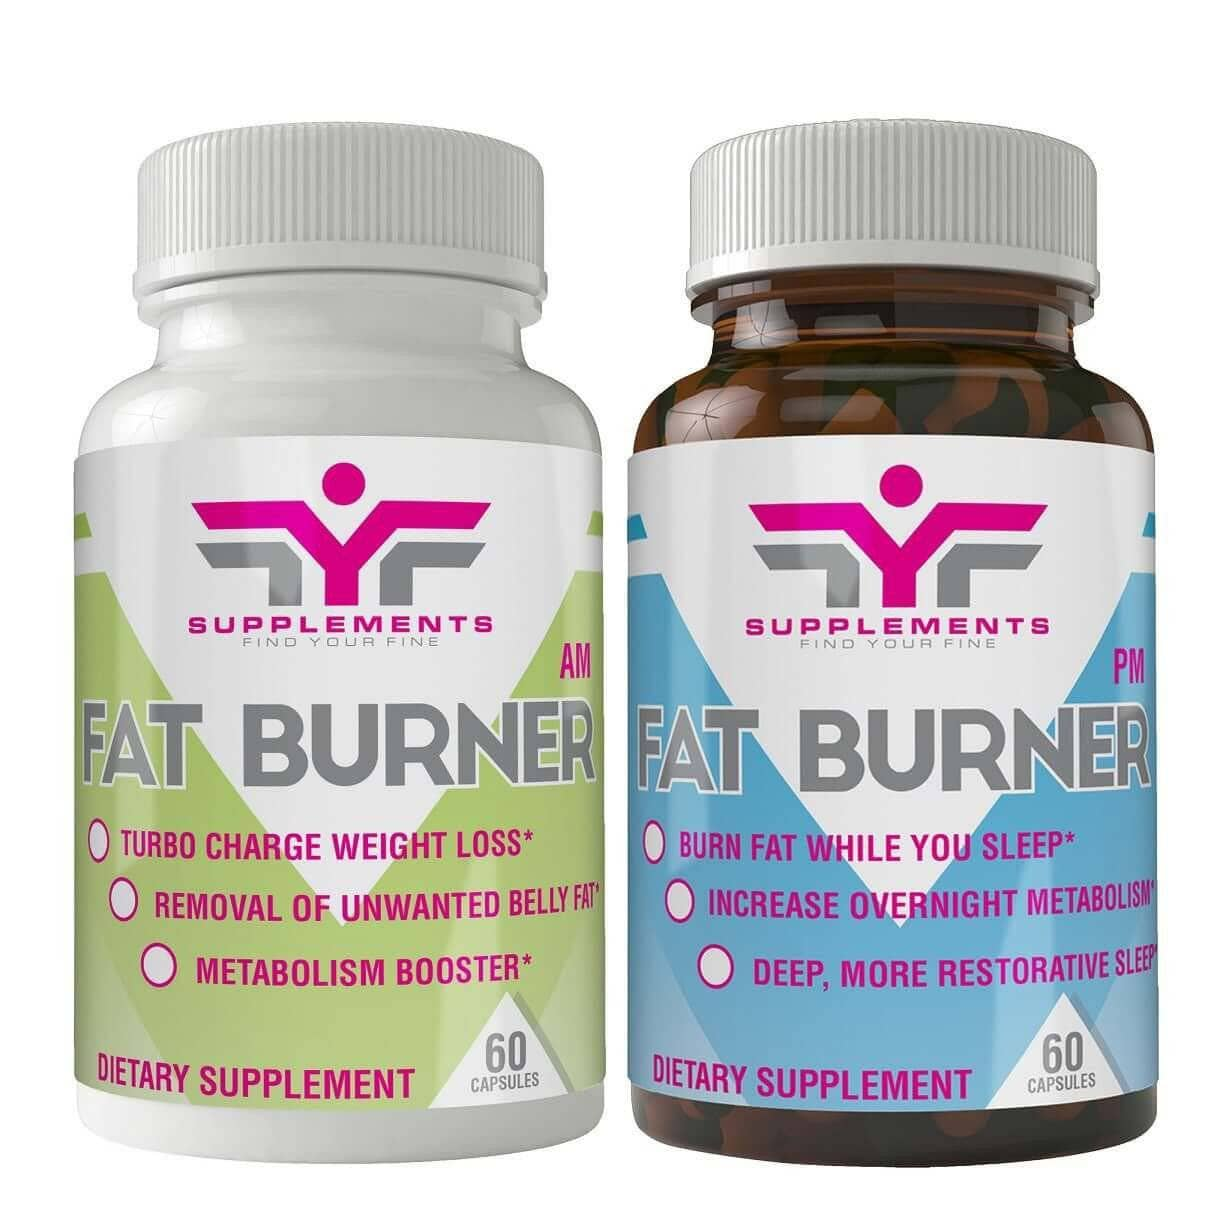 24 hour fat burner pack (30 Day AM & PM Supply)